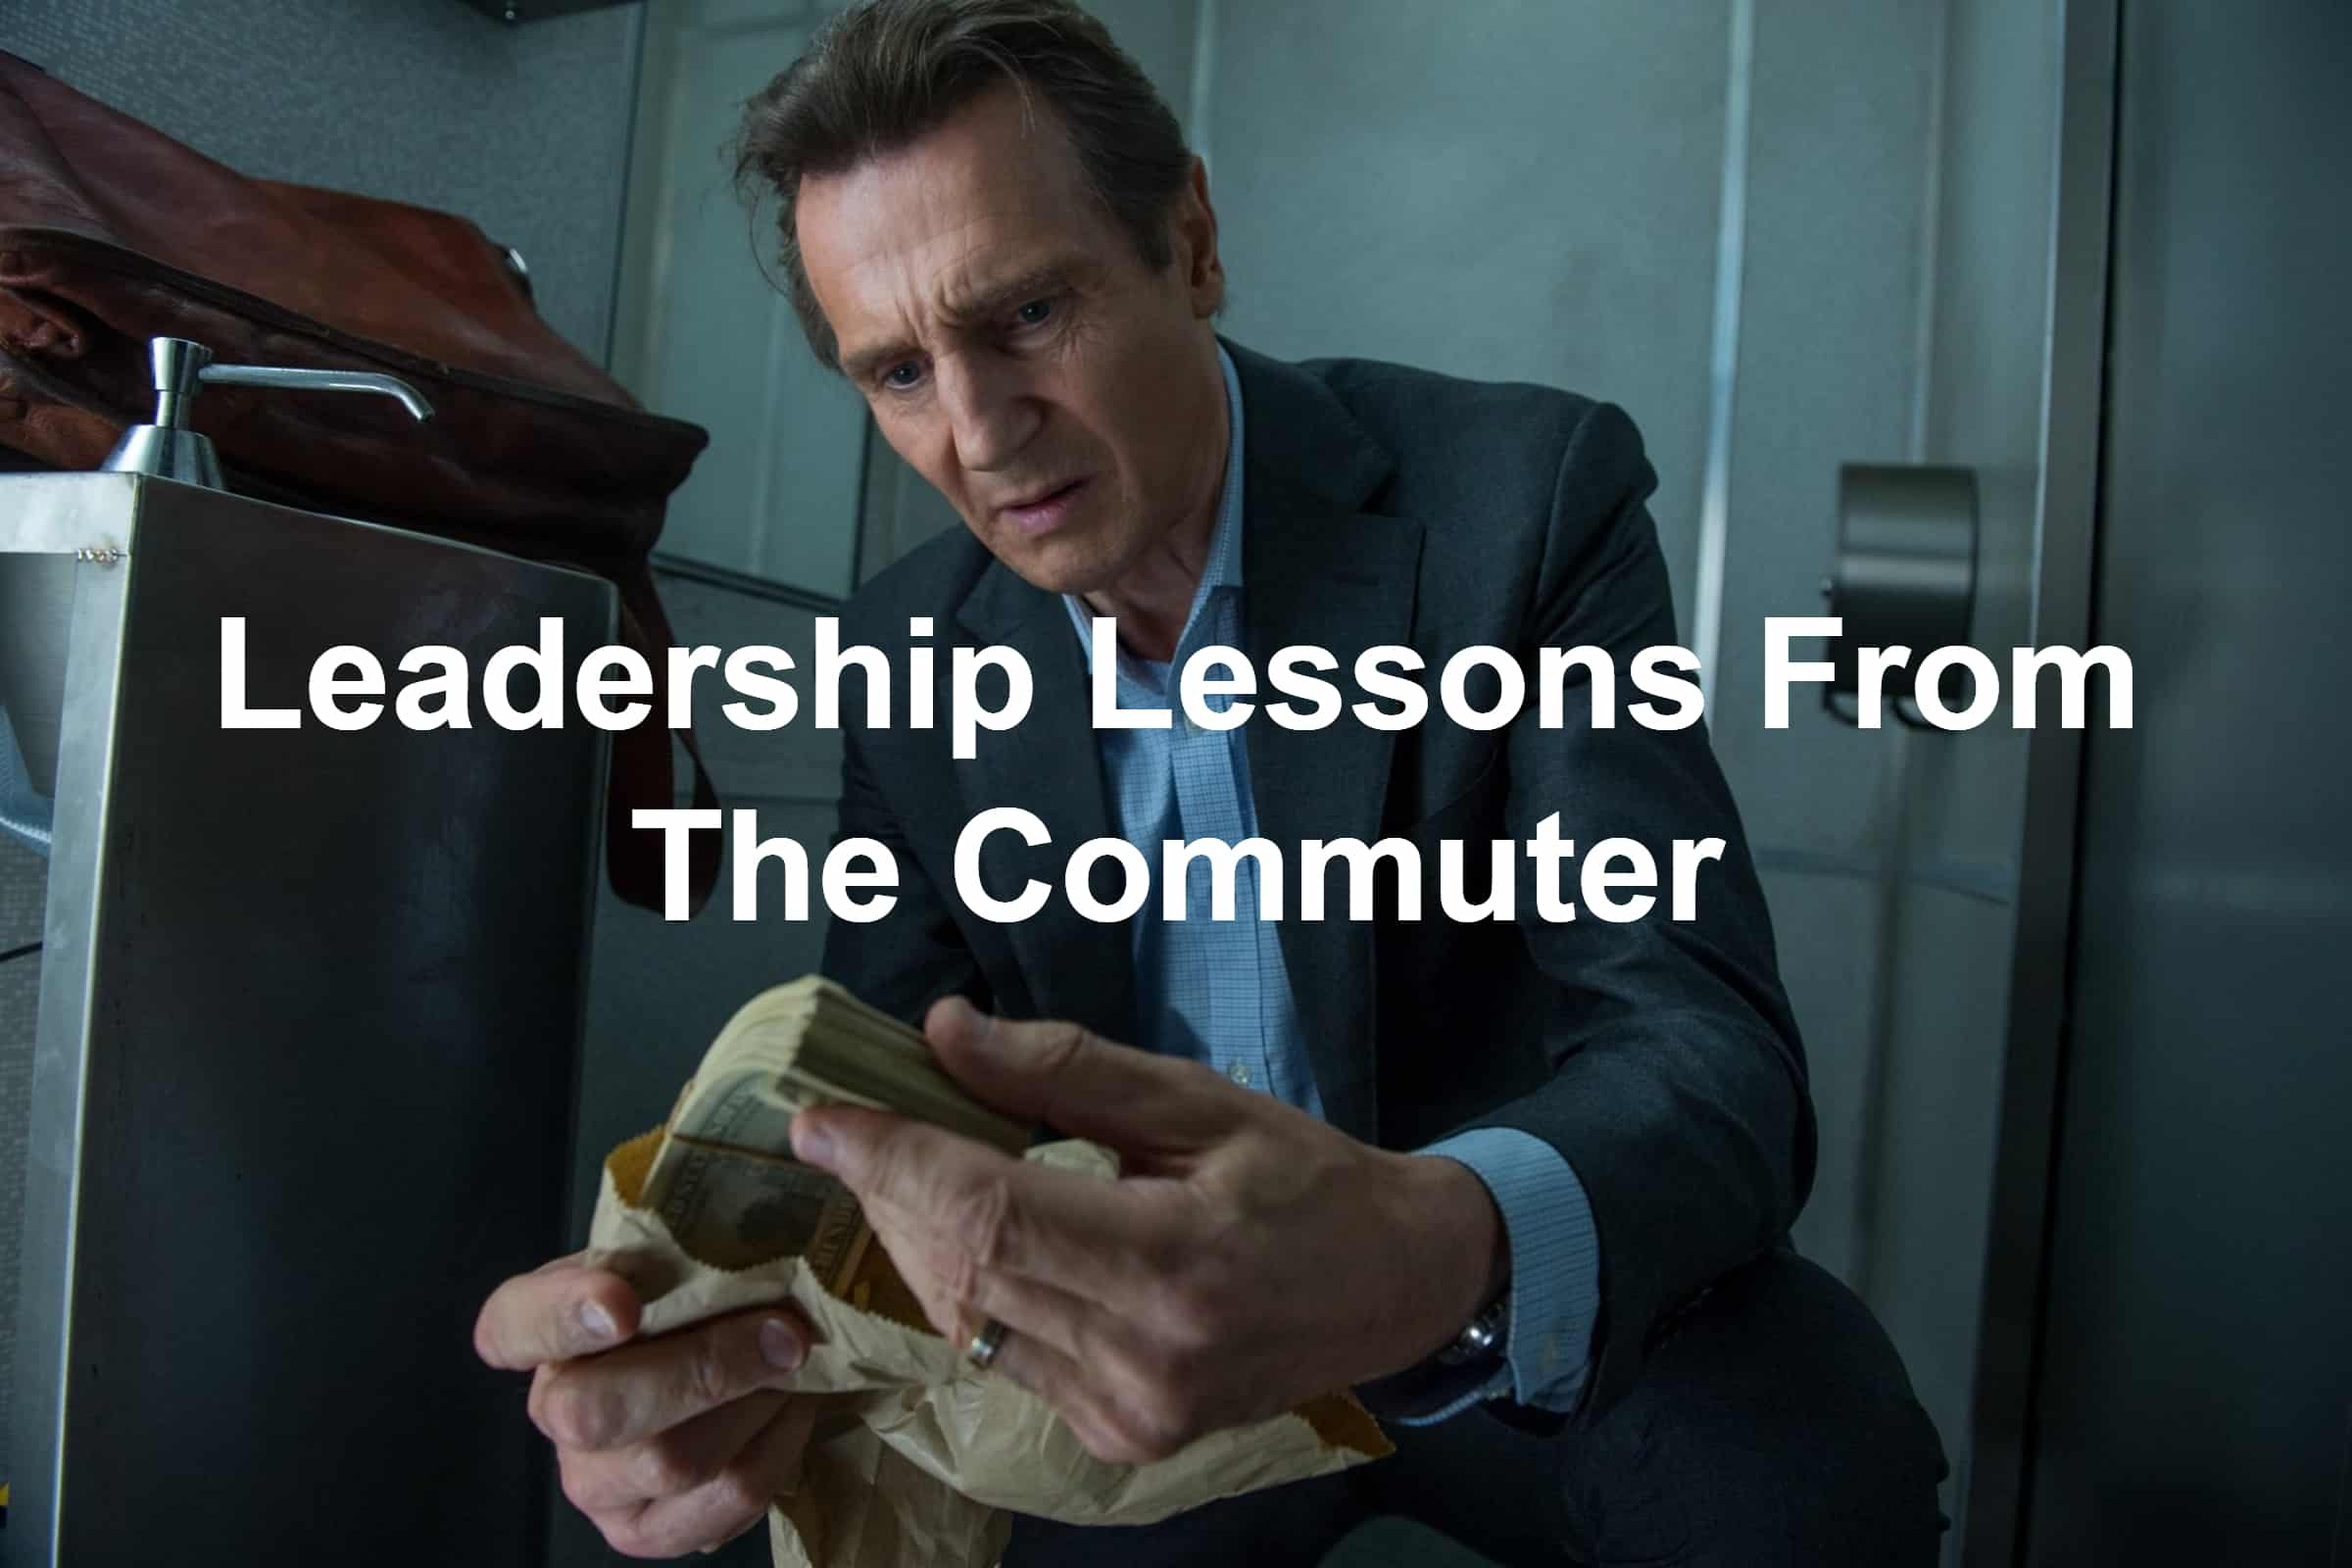 leadership lessons from The Commuter